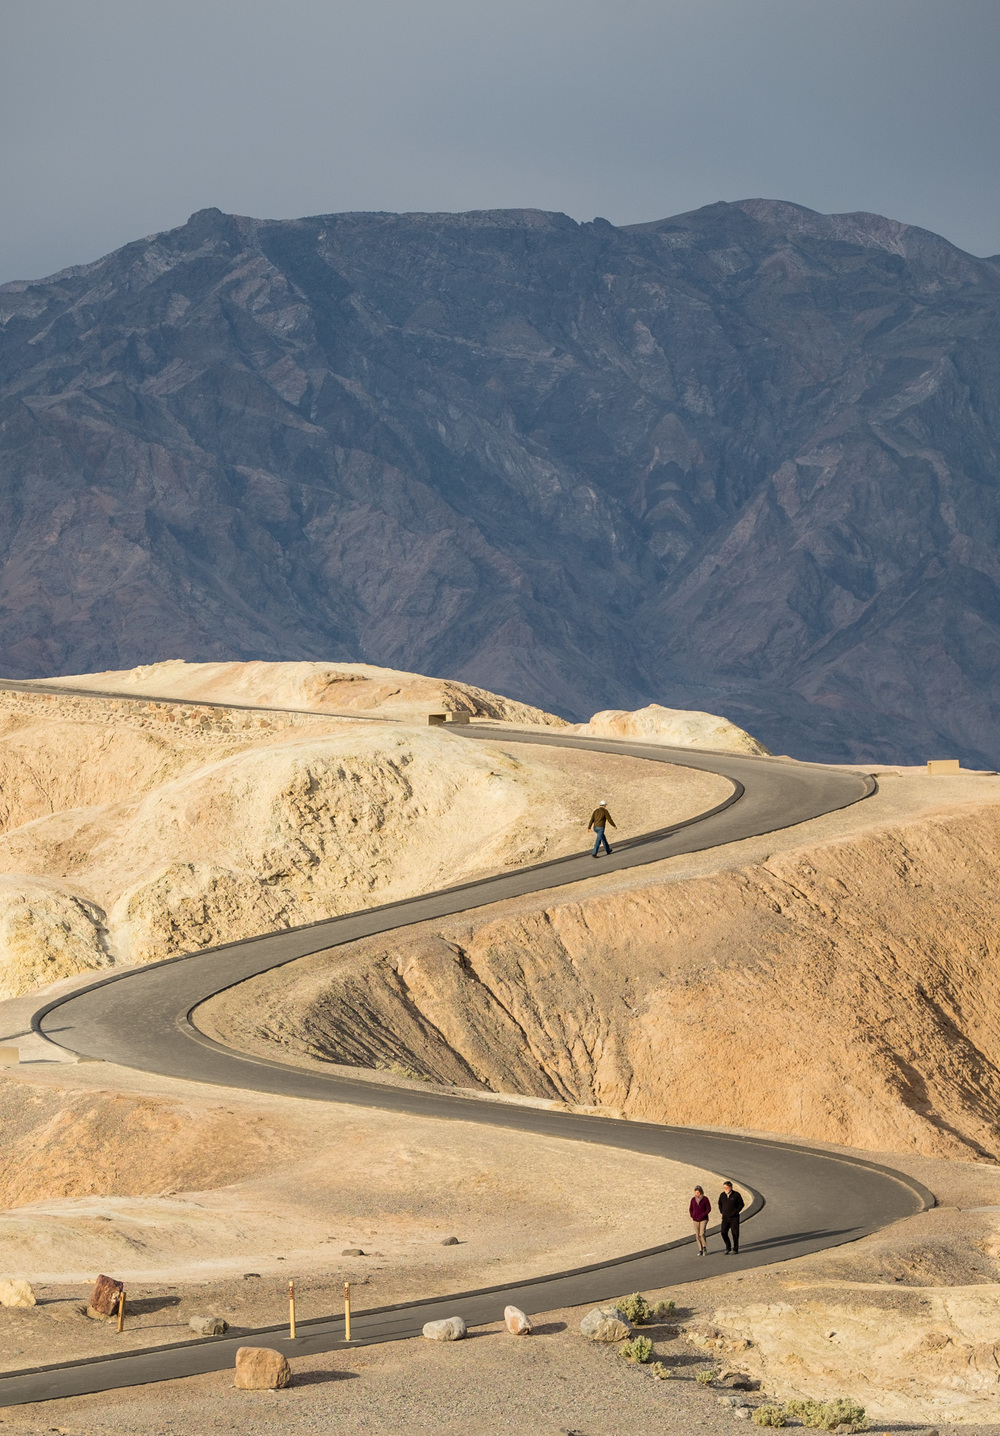 The walkway up to Zabriskie Point offers a lot of fun ways to shoot.